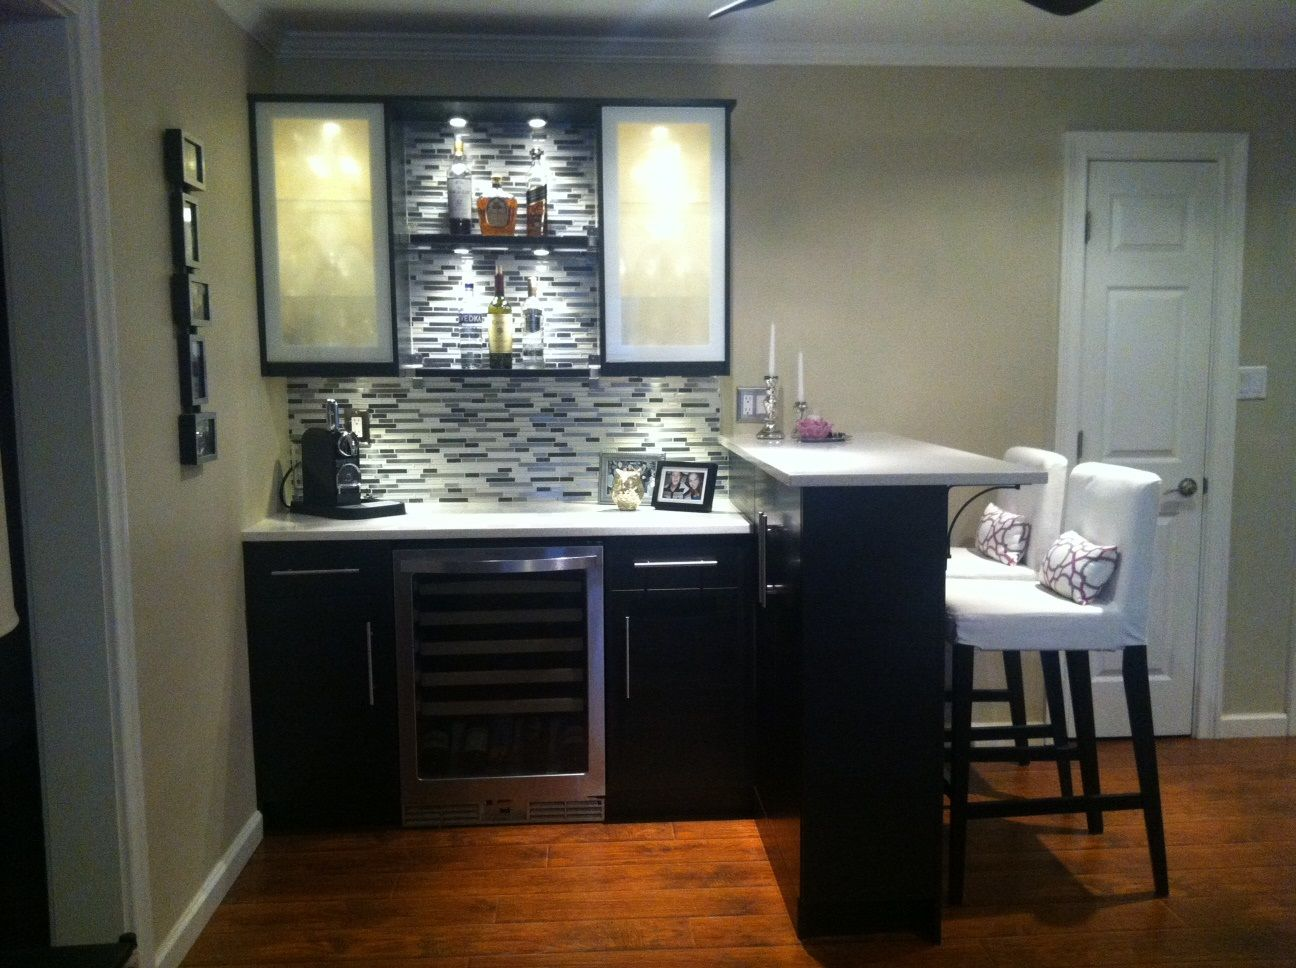 Paul wine bar lowe 39 s back splash home depot granite counter ikea cabinets and bar stools Home bar furniture ikea